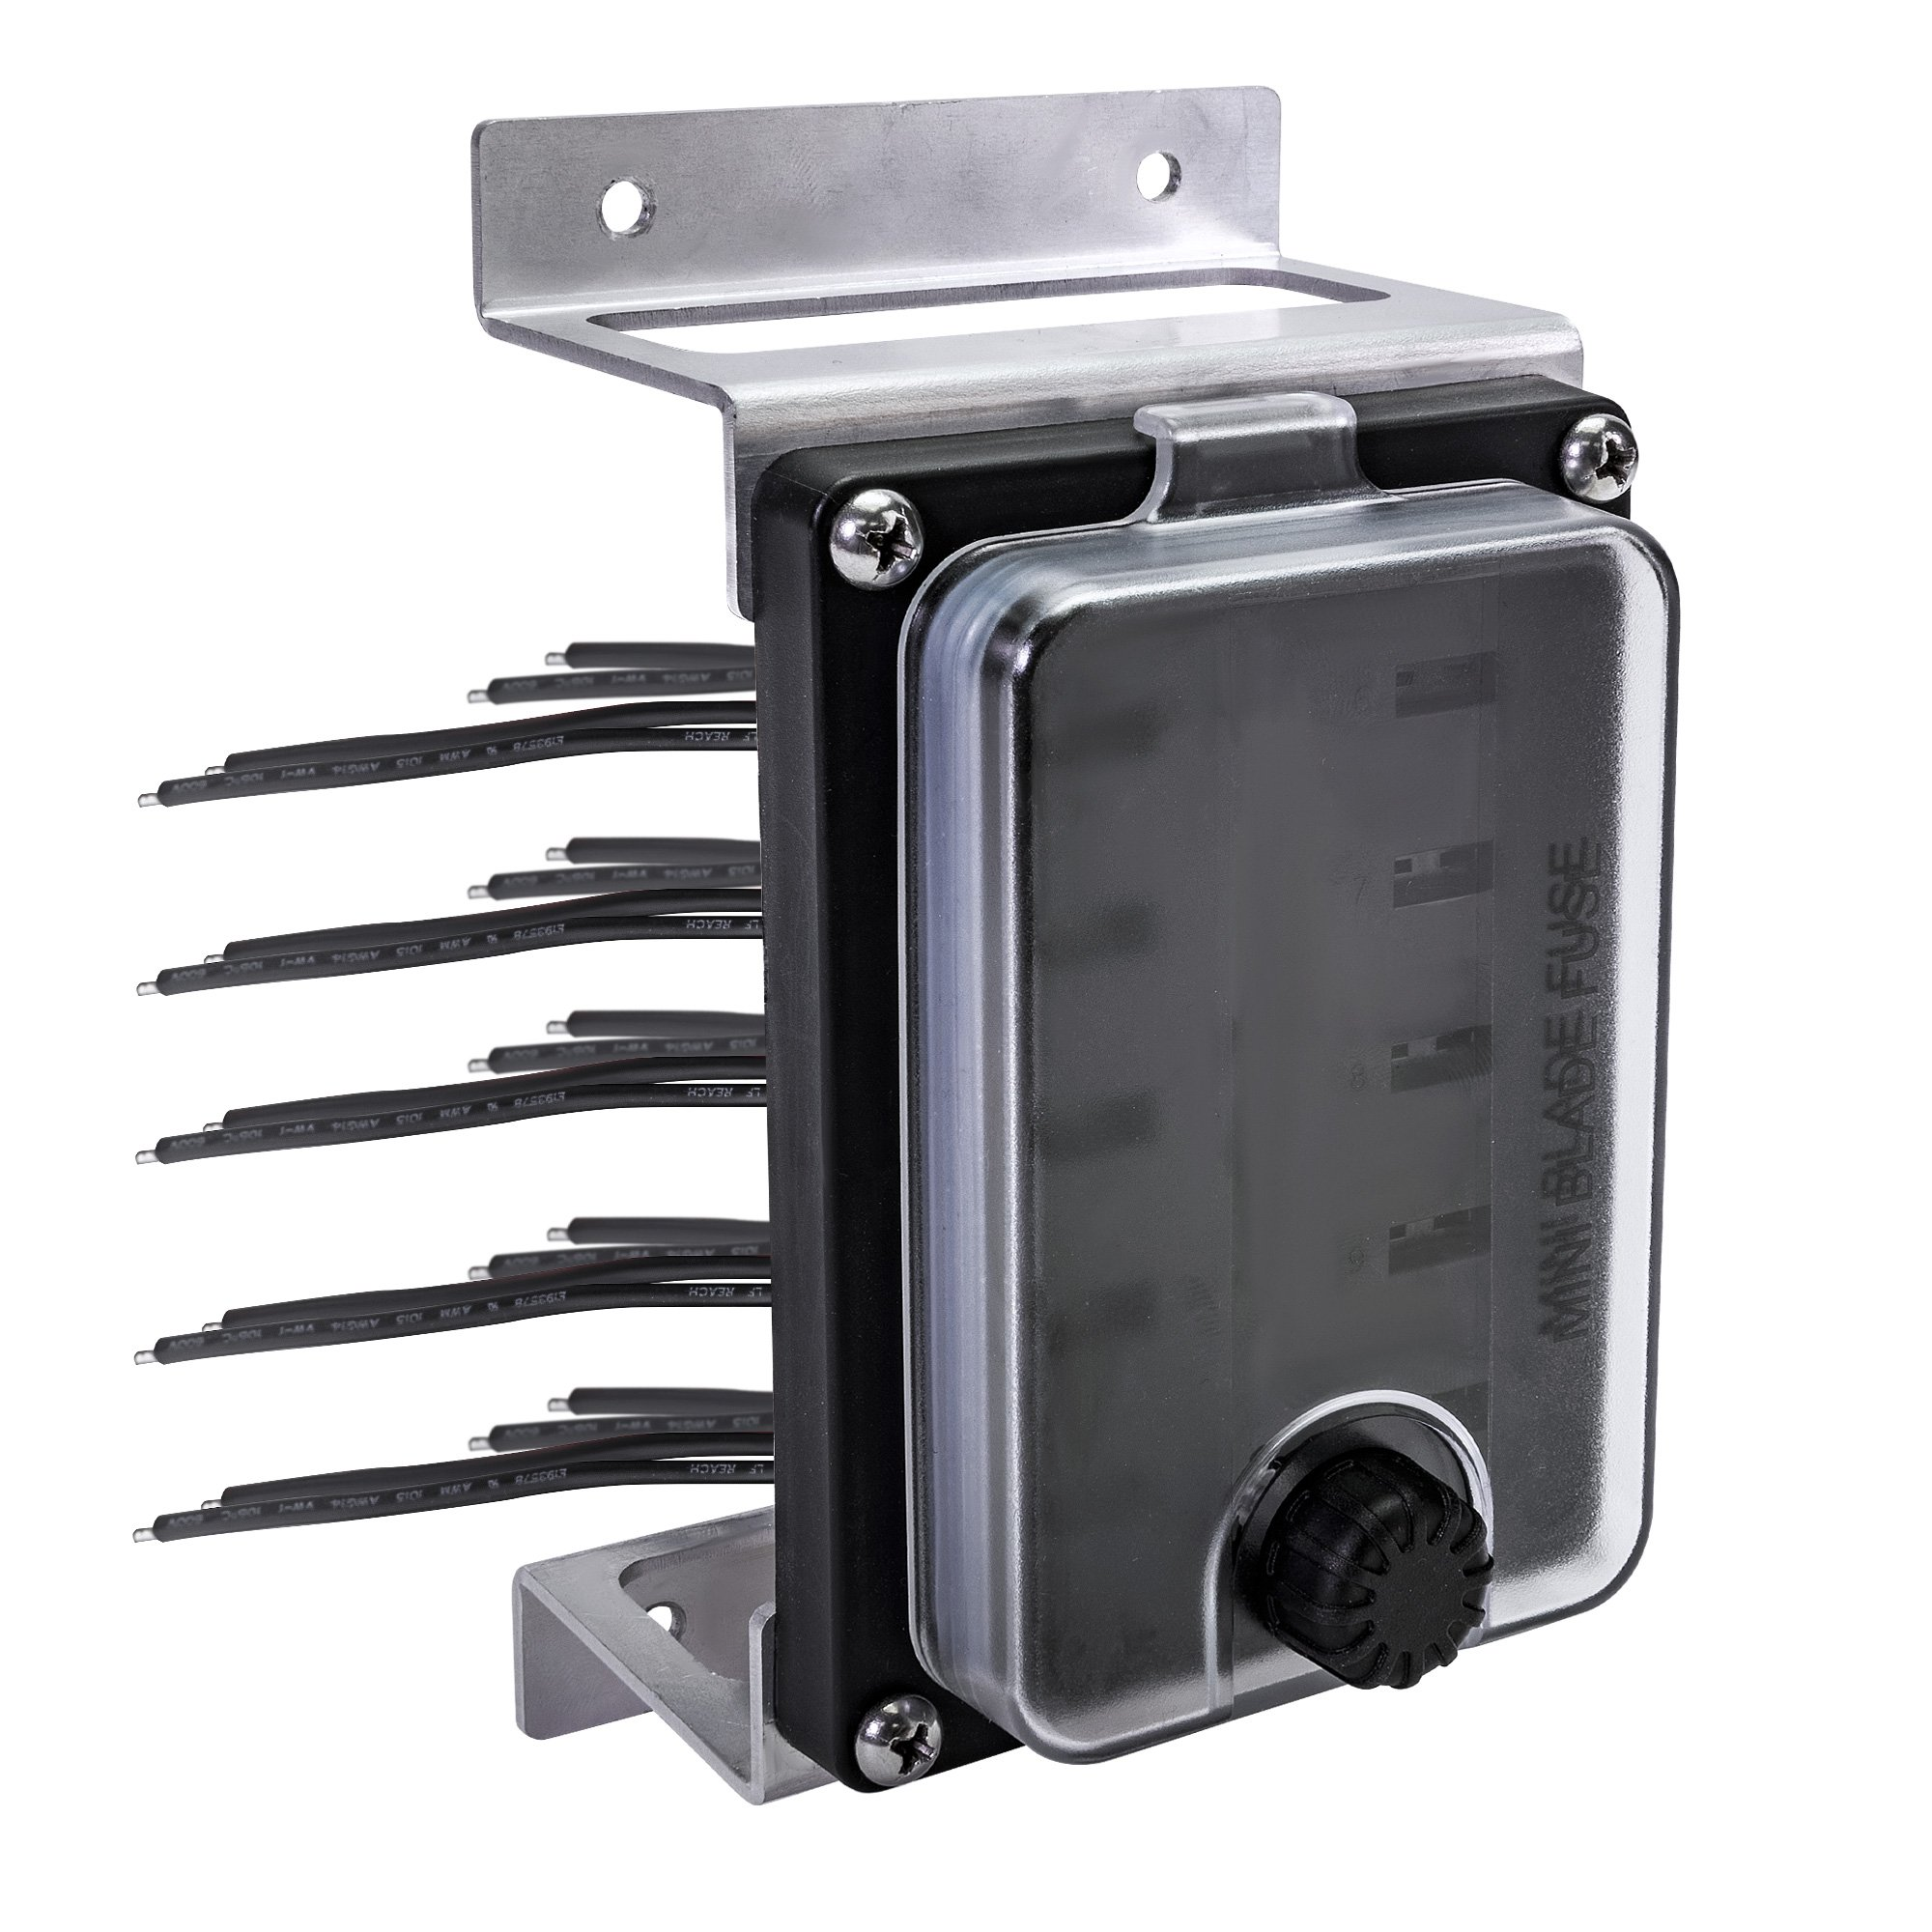 Waterproof 10 Way Mini Fuse Block 20a Mounting Brackets 1pc 5x36x2 Box Mounts The Ip56 Rated Ols Protects Your Electronic Circuits Against Moisture And Dust With A Watertight Gasket For Its Front Cover